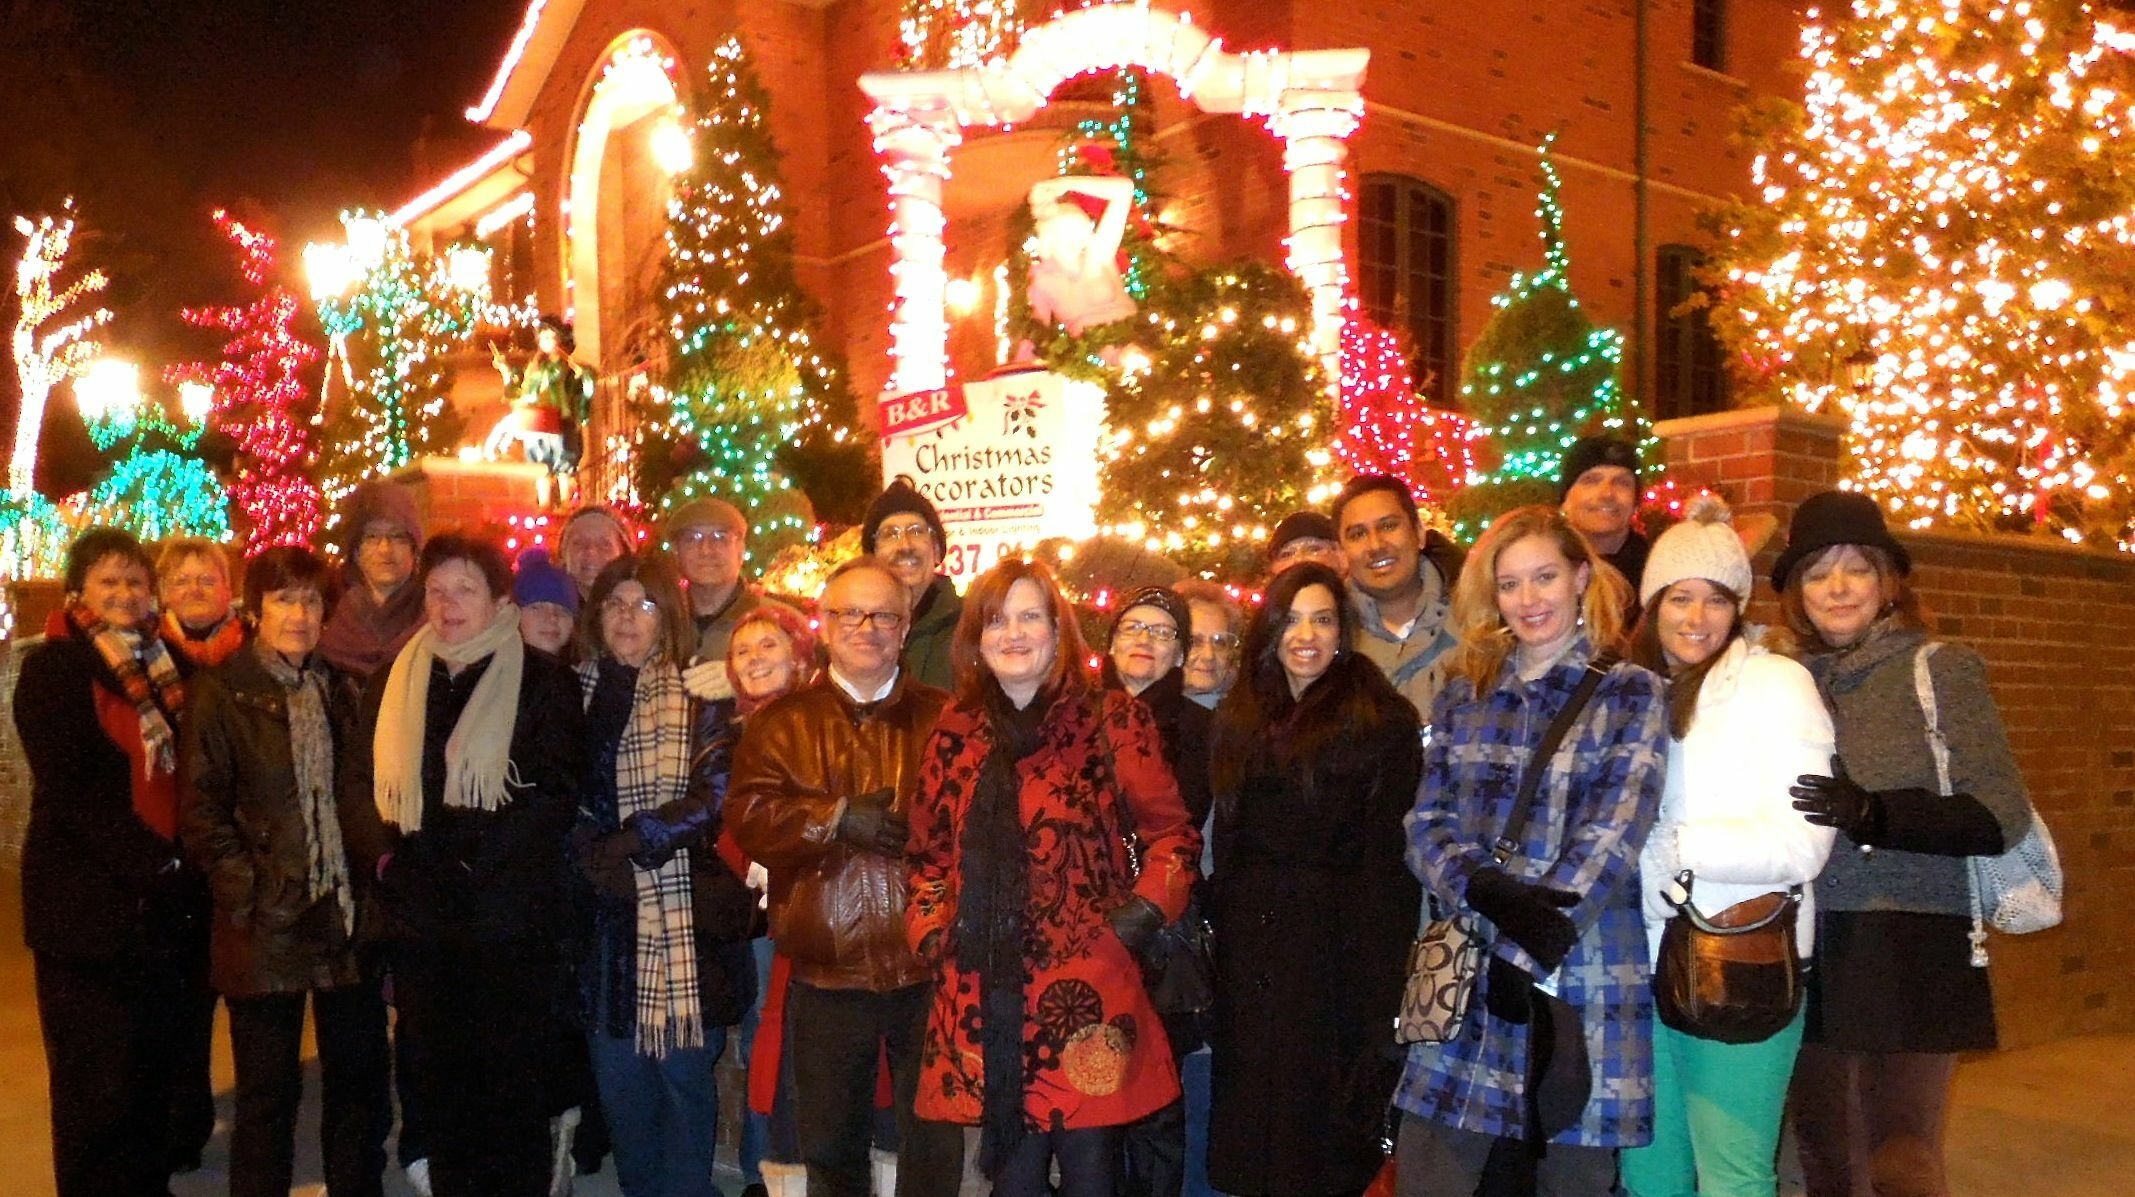 Tour a Glowing Christmas Paradise in Dyker Heights